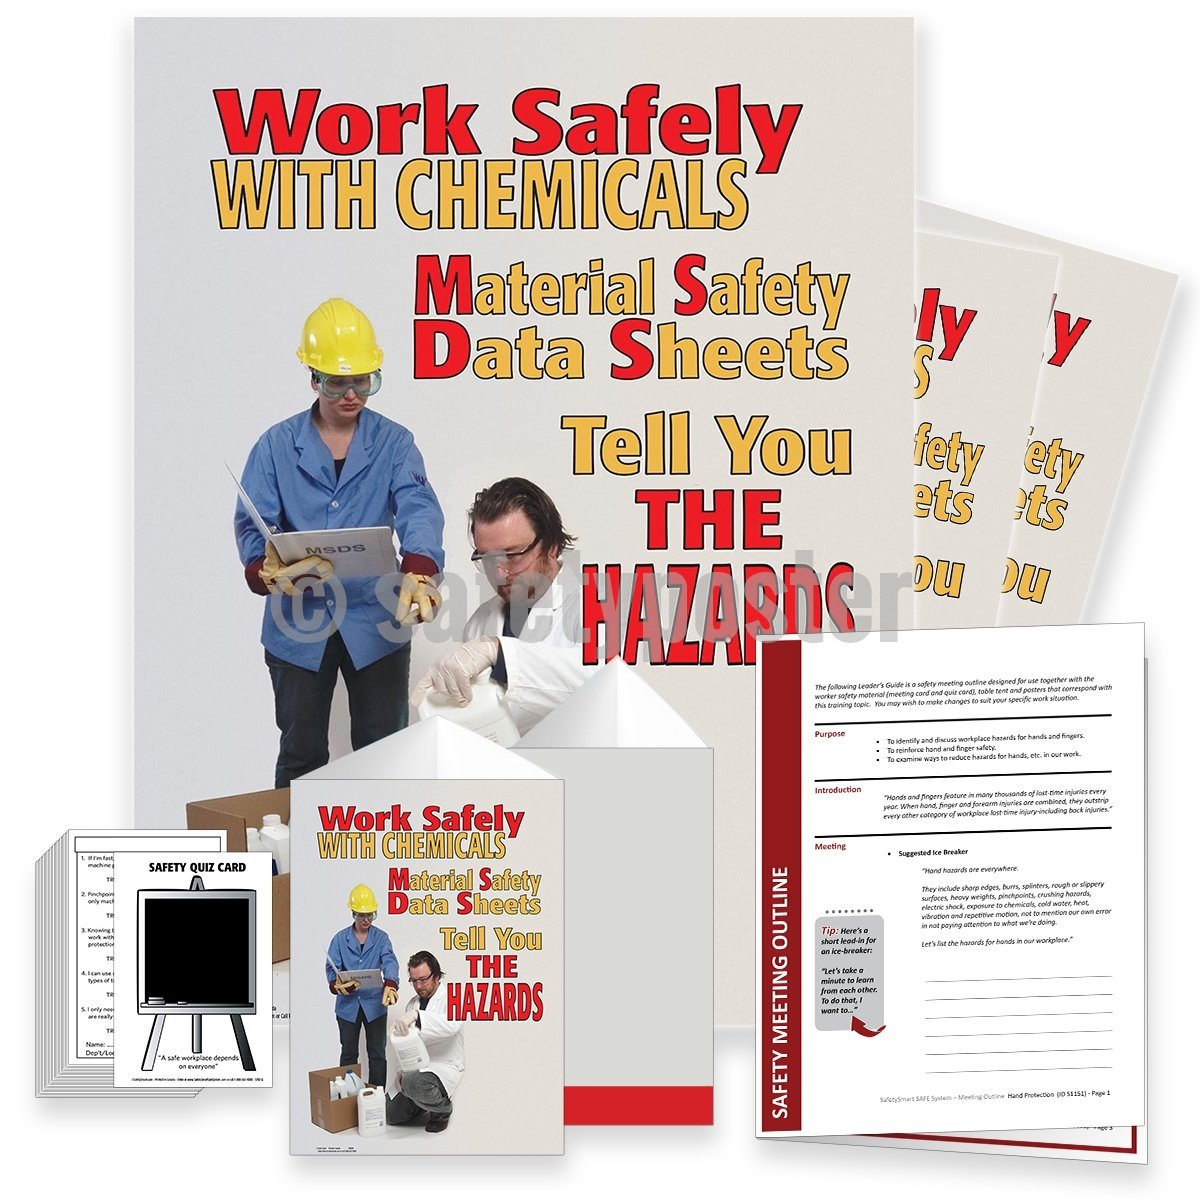 Safety Meeting Kit - Work Safely With Chemicals MSDS